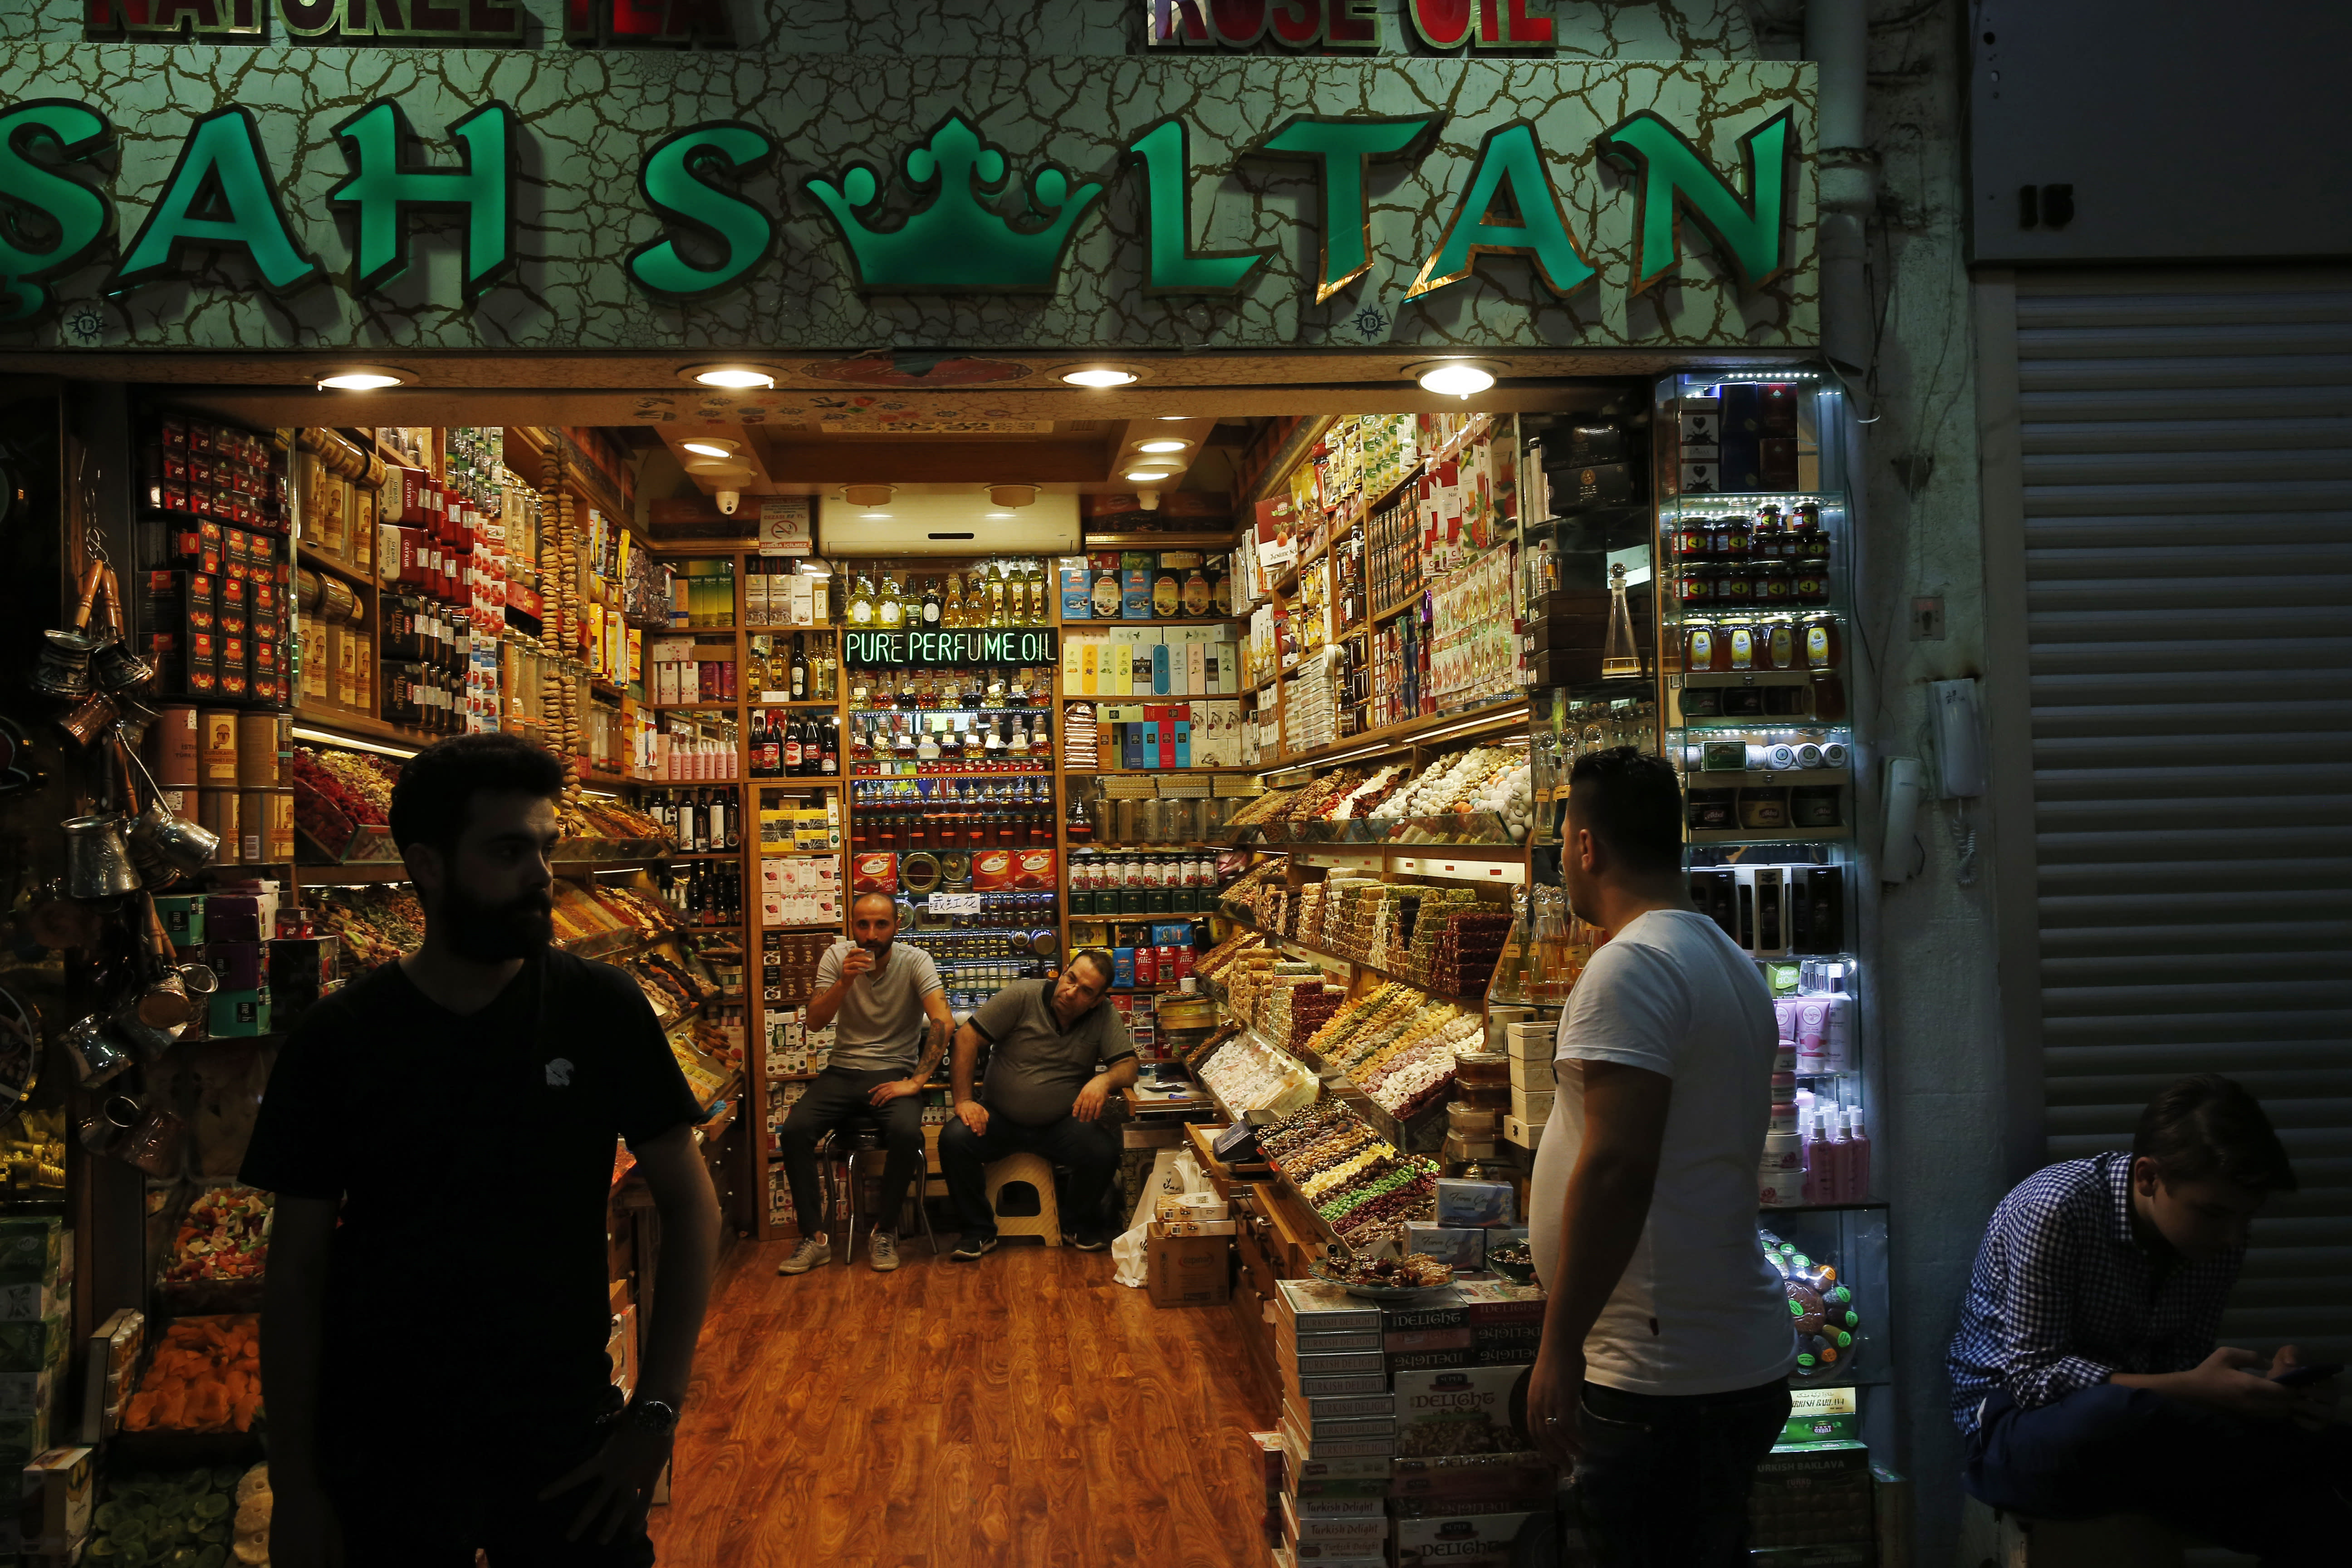 Shop owners wait for customers at Istanbul's Grand Bazaar, one of the city's main tourist attractions, Friday, Aug. 17, 2018. Turkey's lira currency fell once again, as Turkey and the United States exchanged new threats of sanctions Friday. (AP Photo/Lefteris Pitarakis)